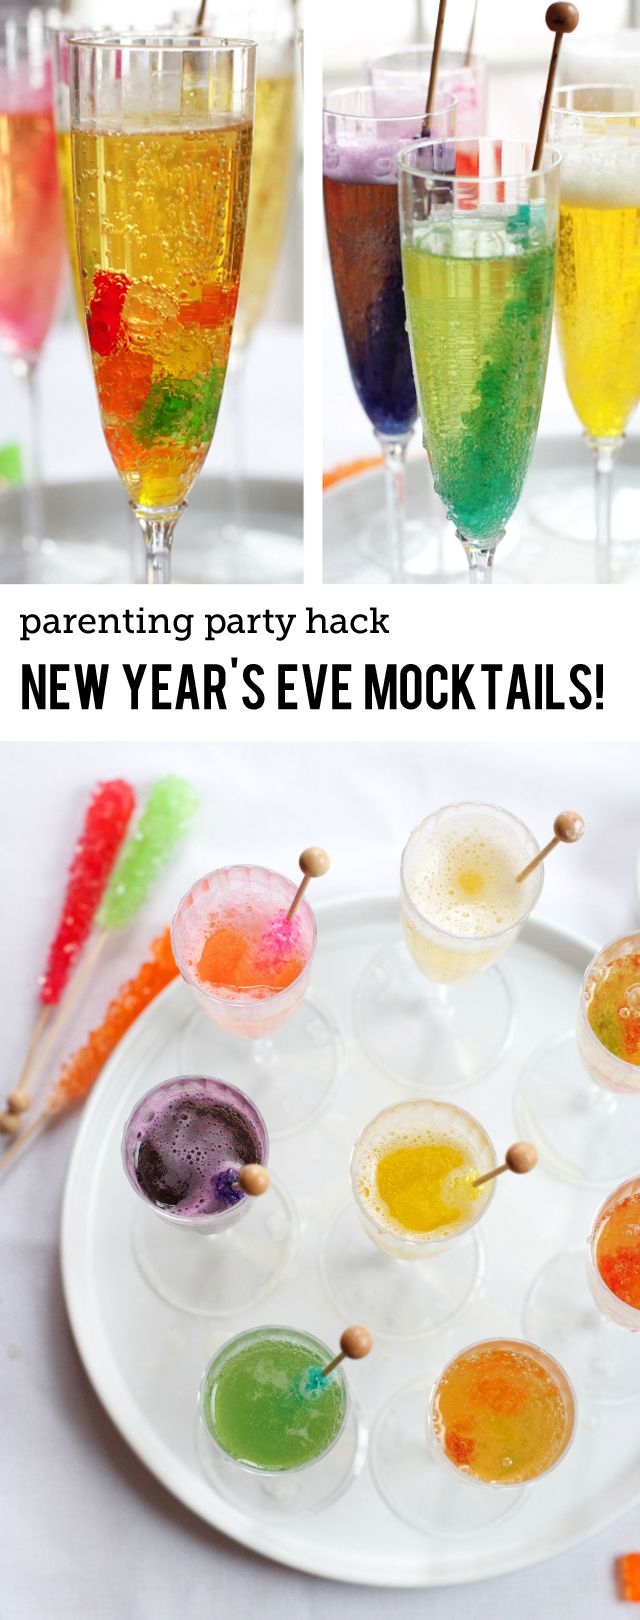 I mentioned last week that this is the first year our family is going to attempt some sort of New Year's Eve celebration with the littles. Actually, a Happy Noon Year celebration may be what's really on the docket.  Regardless of when we do it, one thing is for sure- a tasty non-alcoholic drink (or …